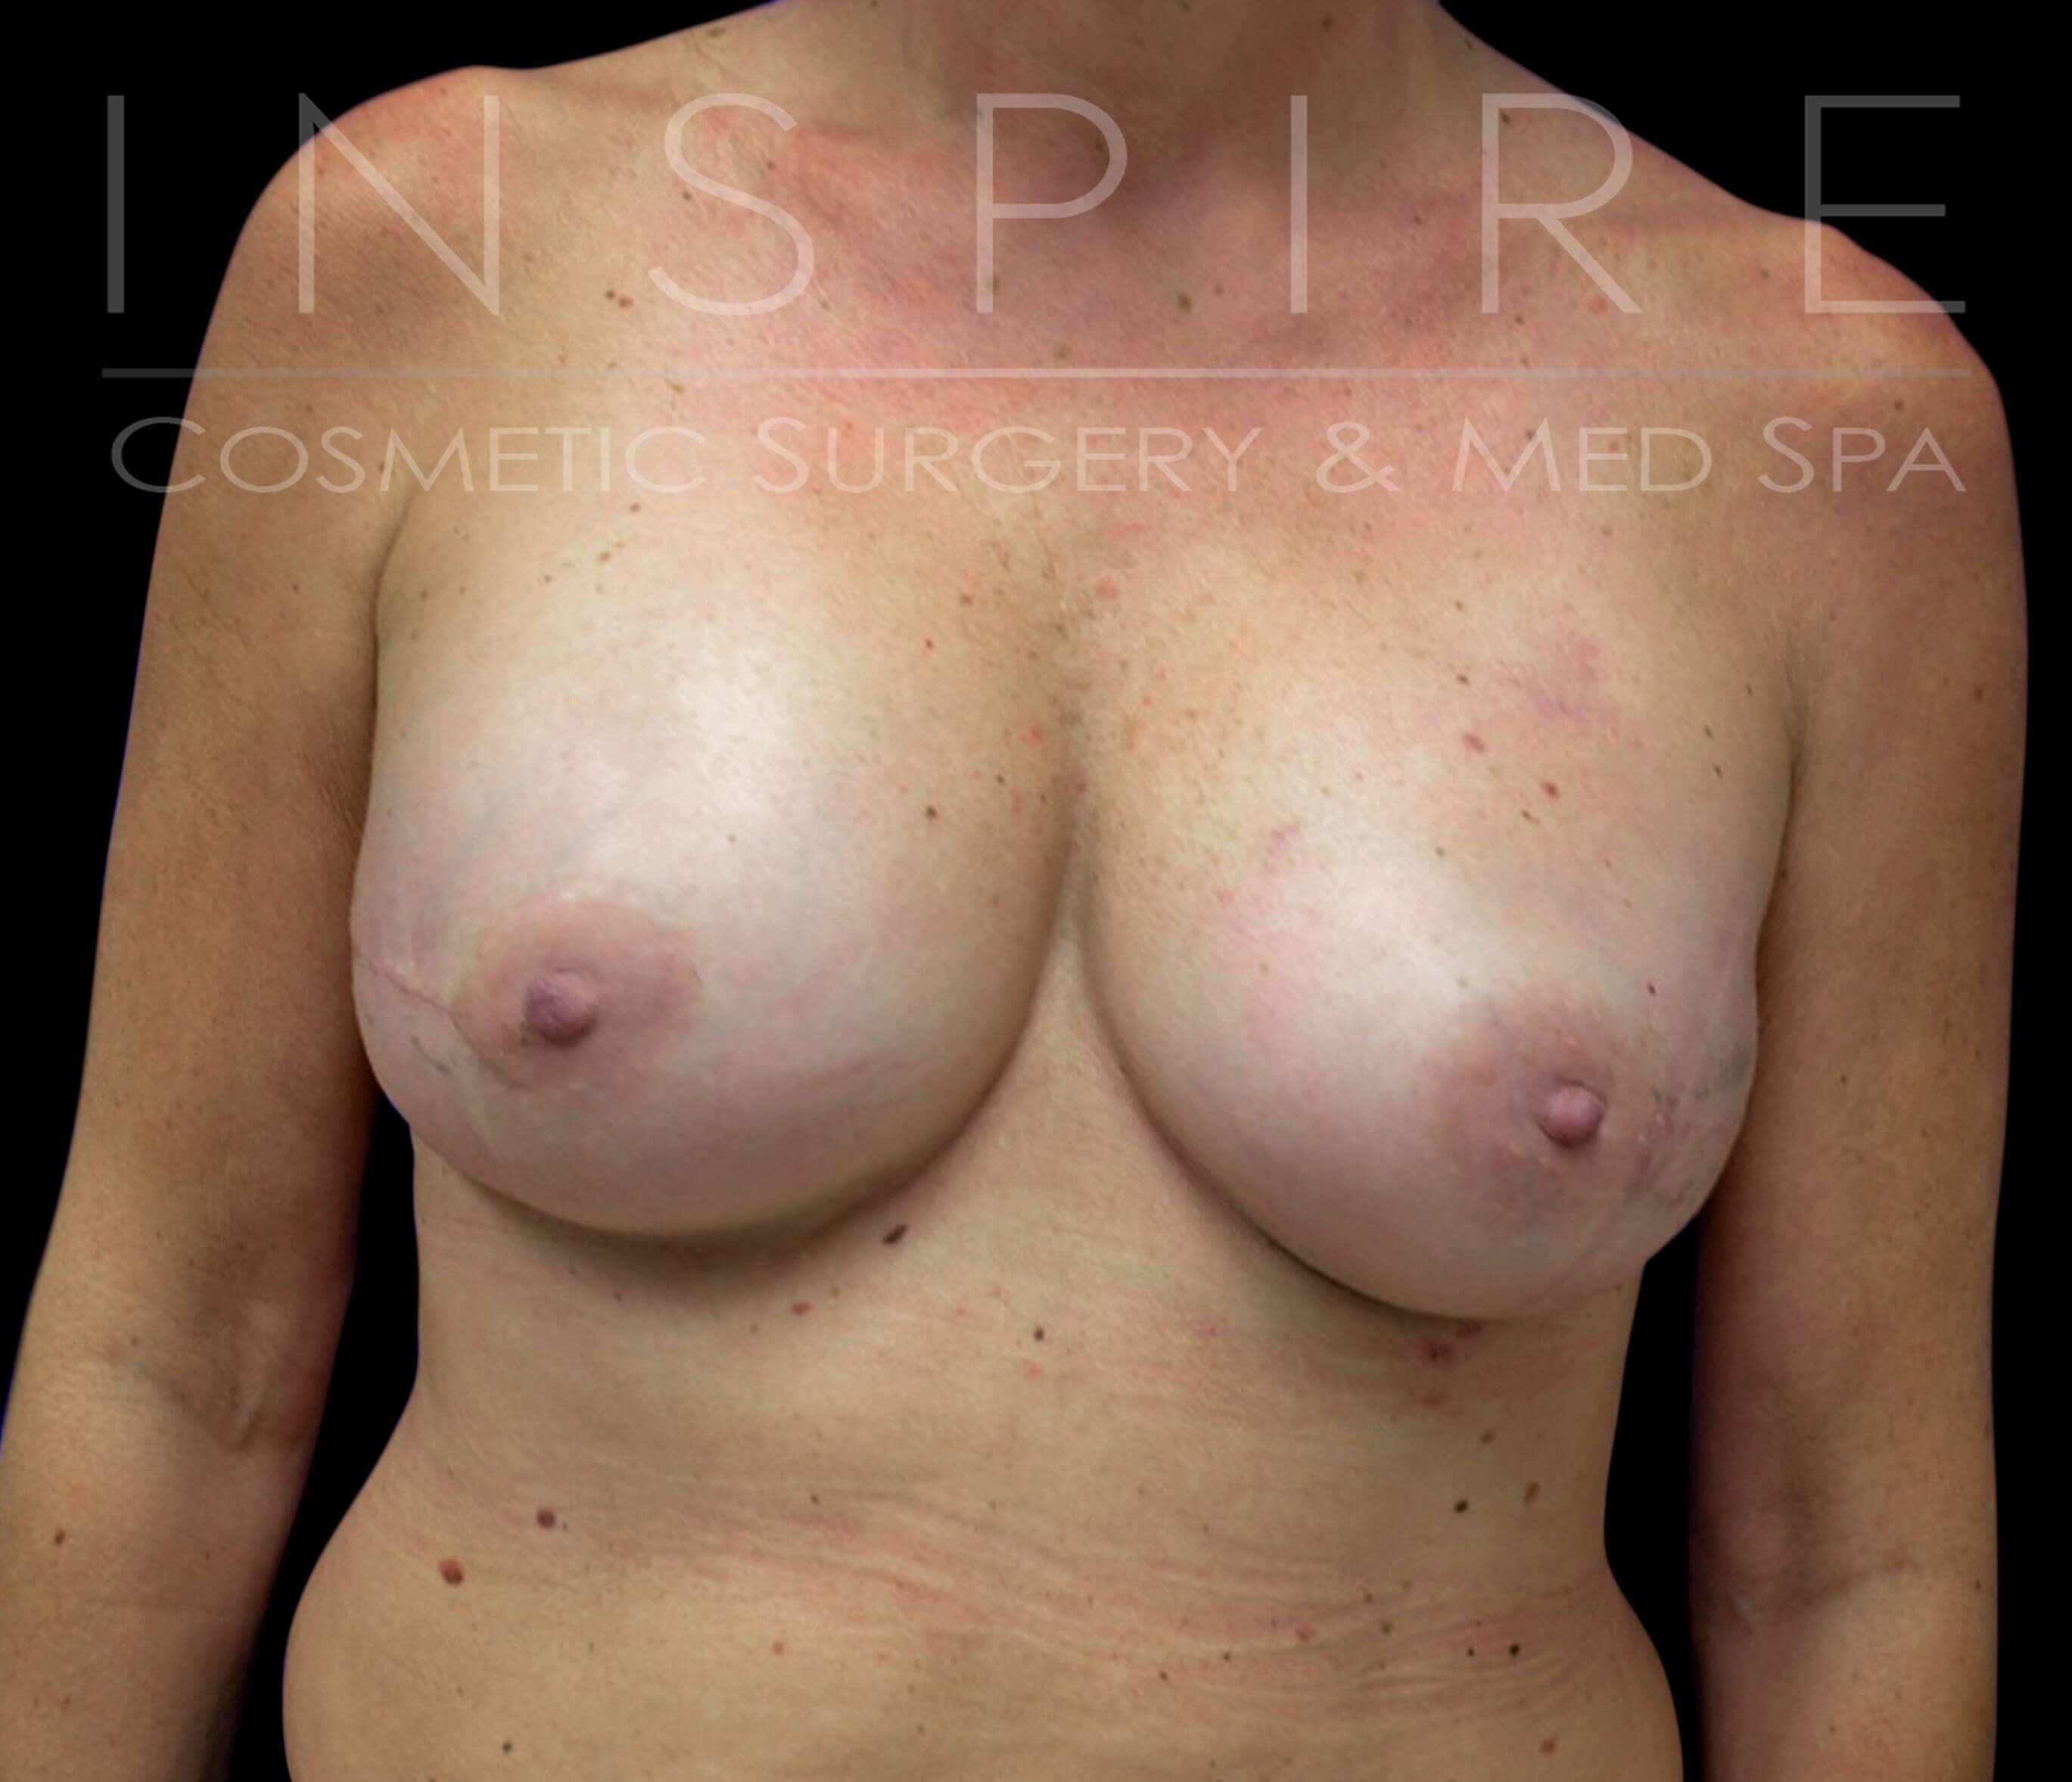 Bilateral Nipple Sparing After